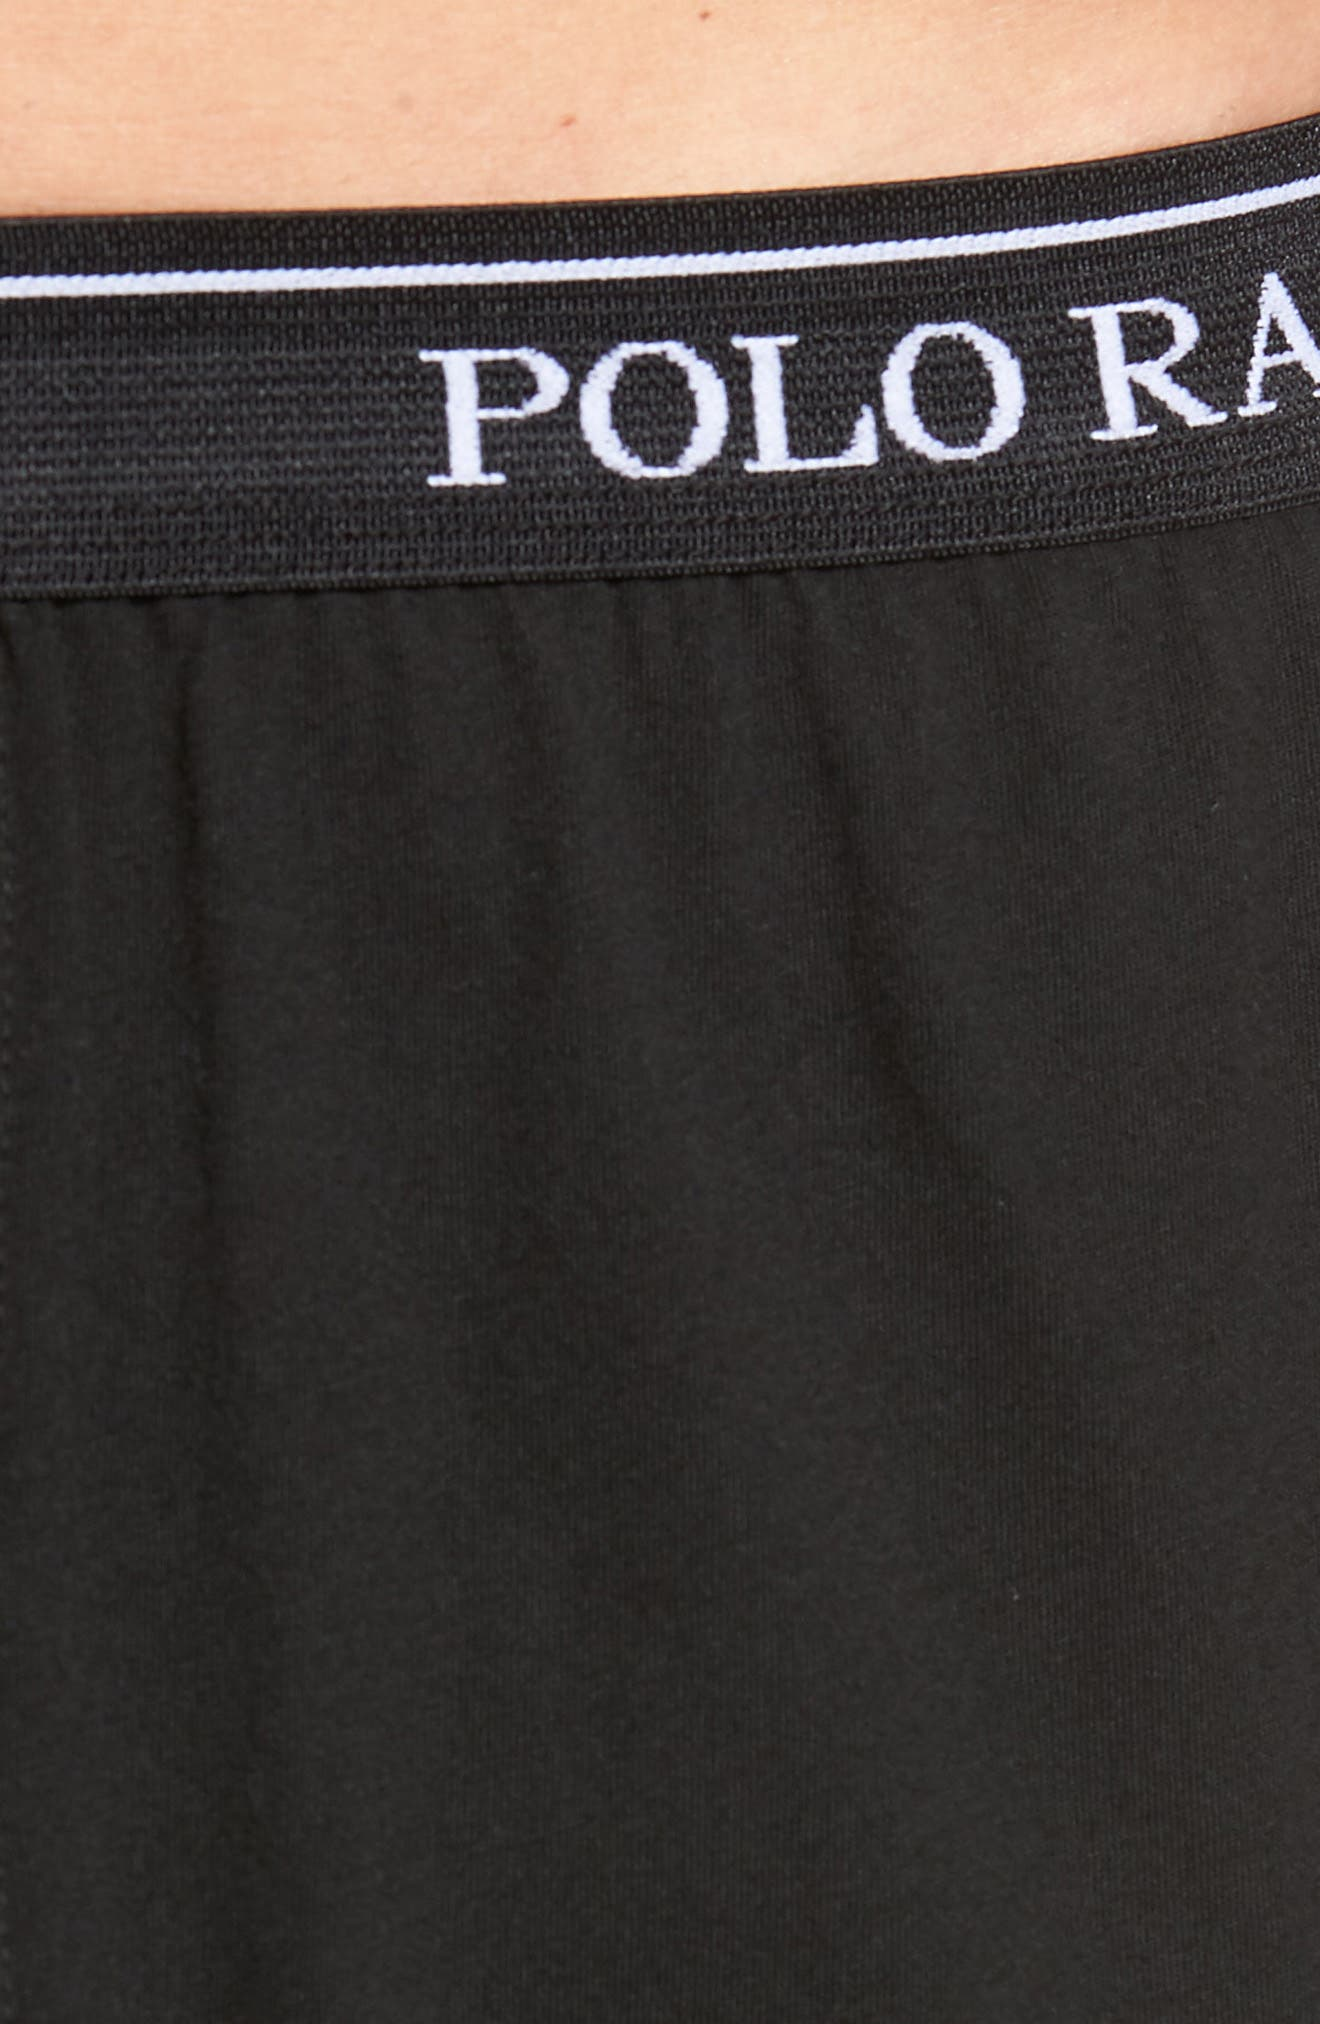 LAUREN RALPH LAUREN, Polo Ralph Lauren 3-Pack Cotton Boxers, Alternate thumbnail 6, color, POLO BLACK